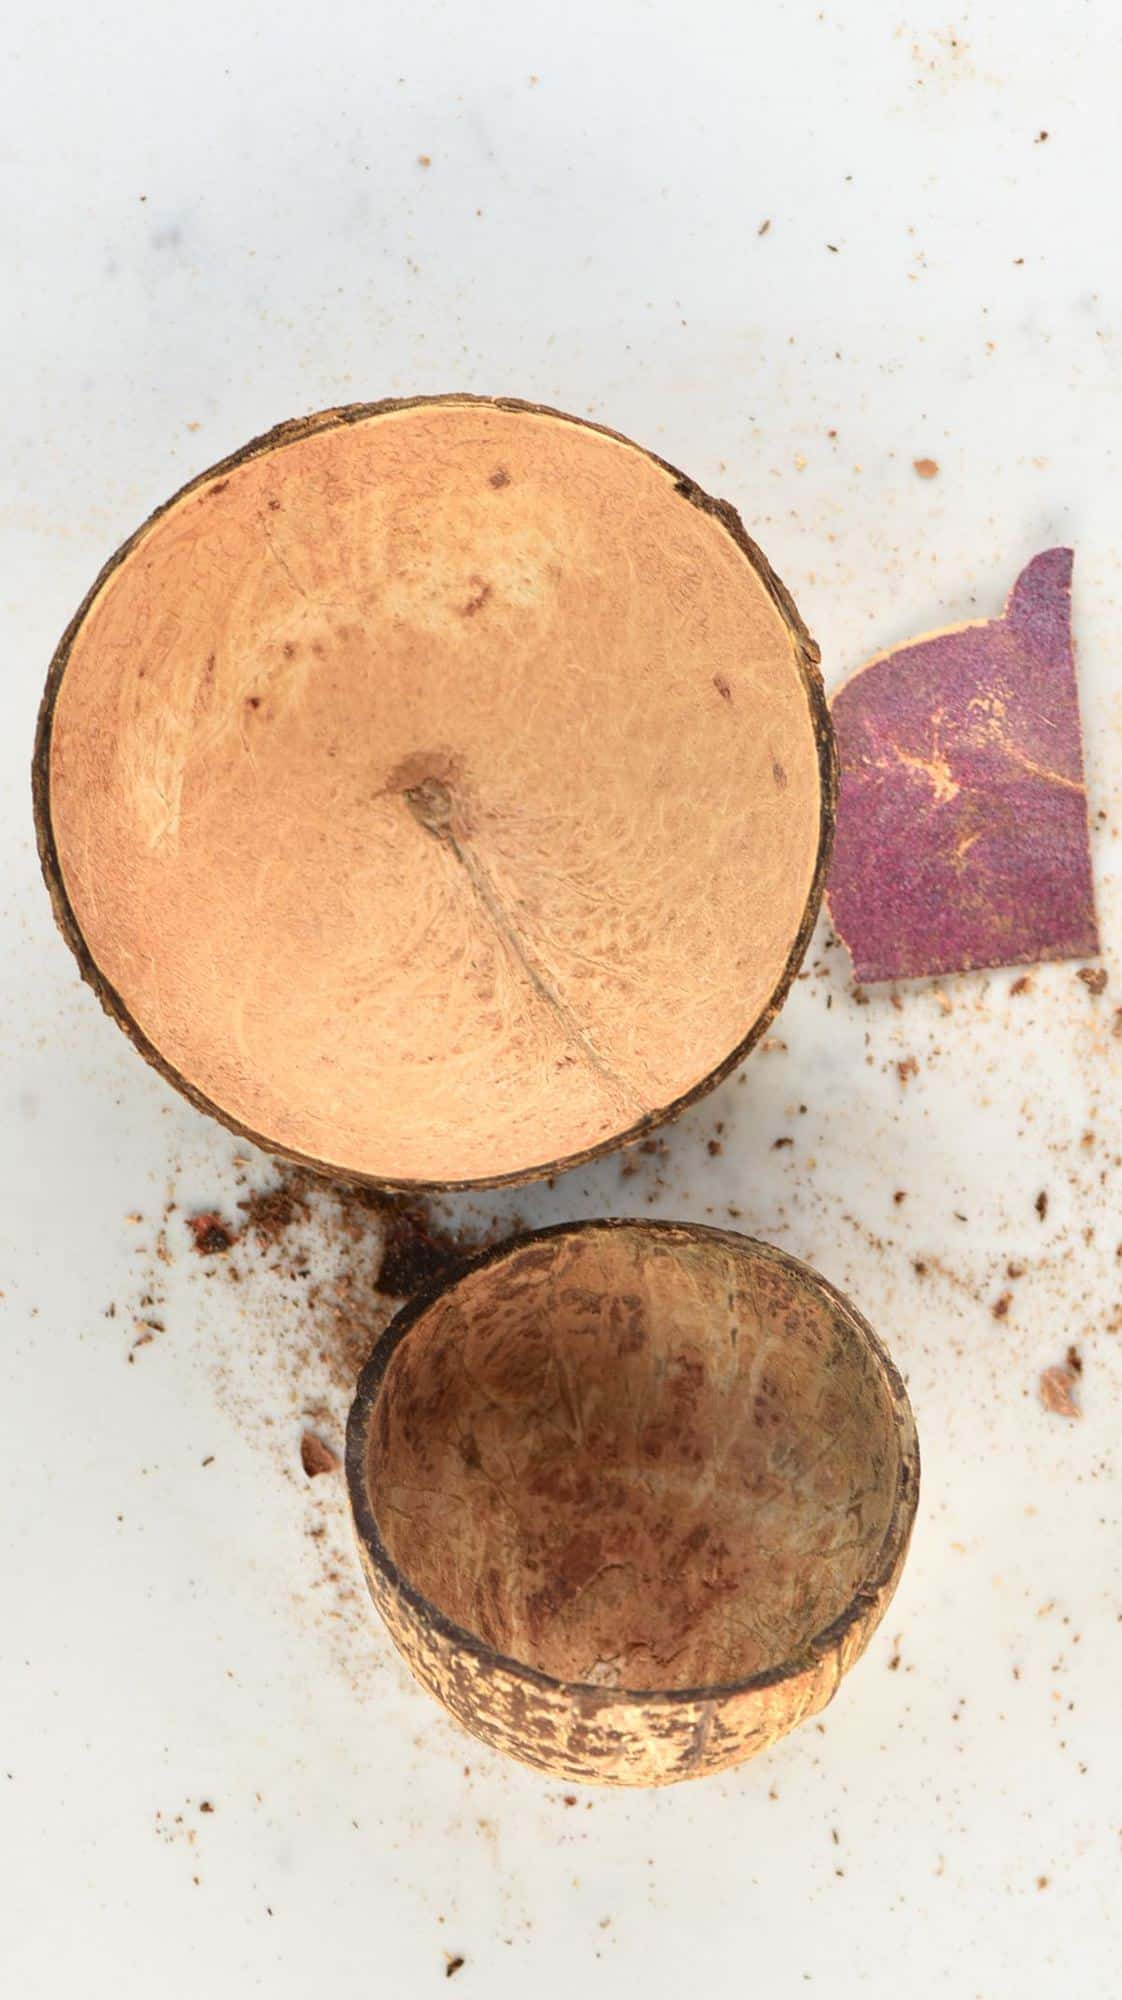 Two coconut bowls and a piece of sandpaper